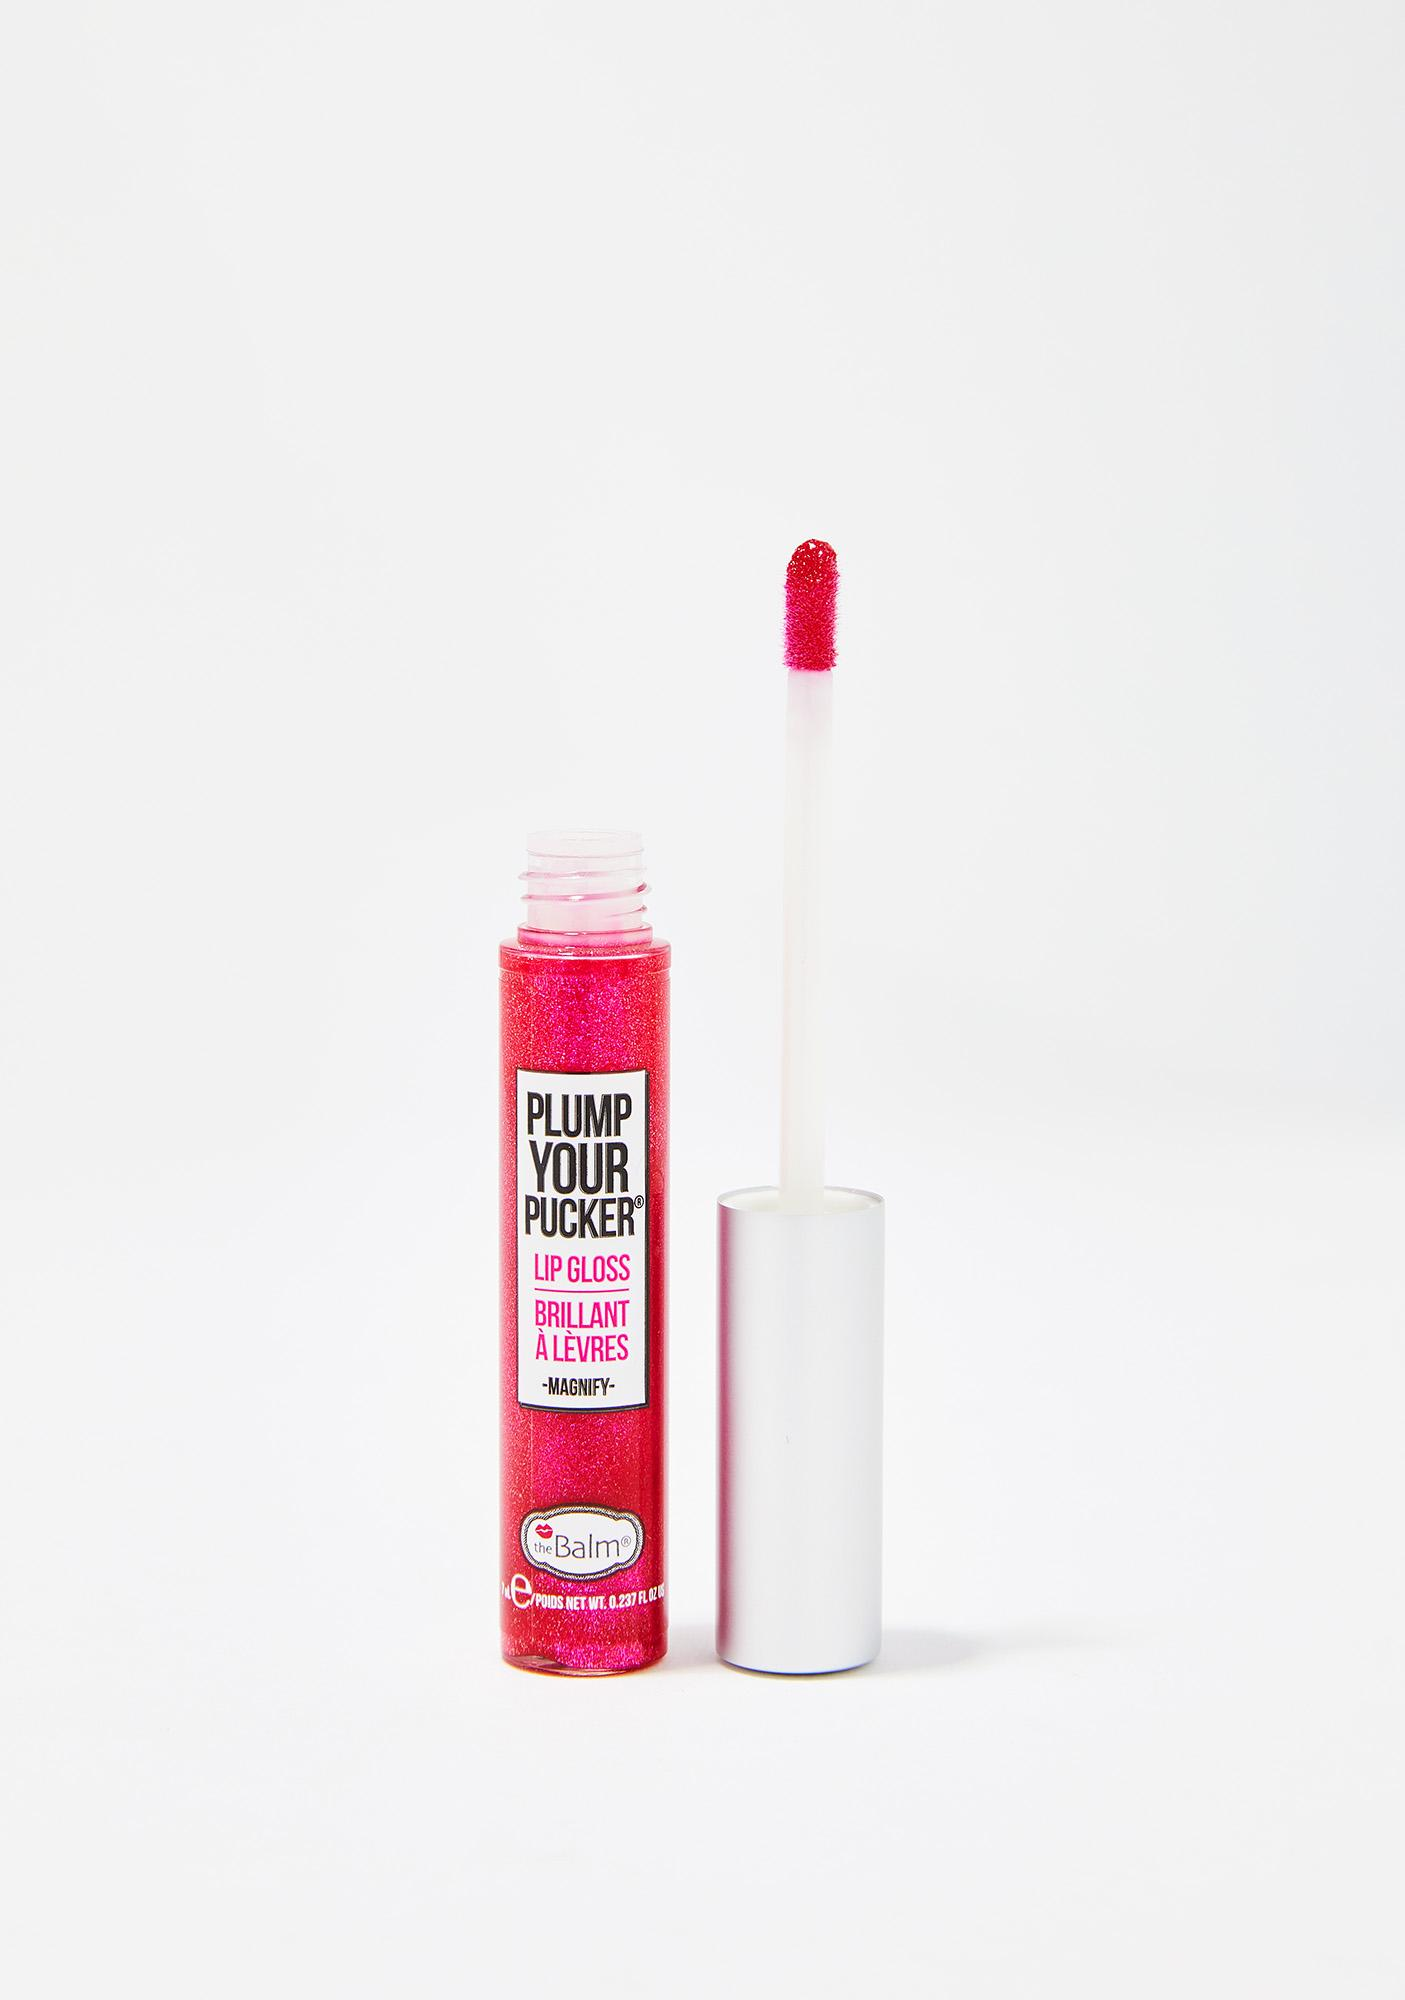 The Balm Magnify Plump Your Pucker Lip Gloss